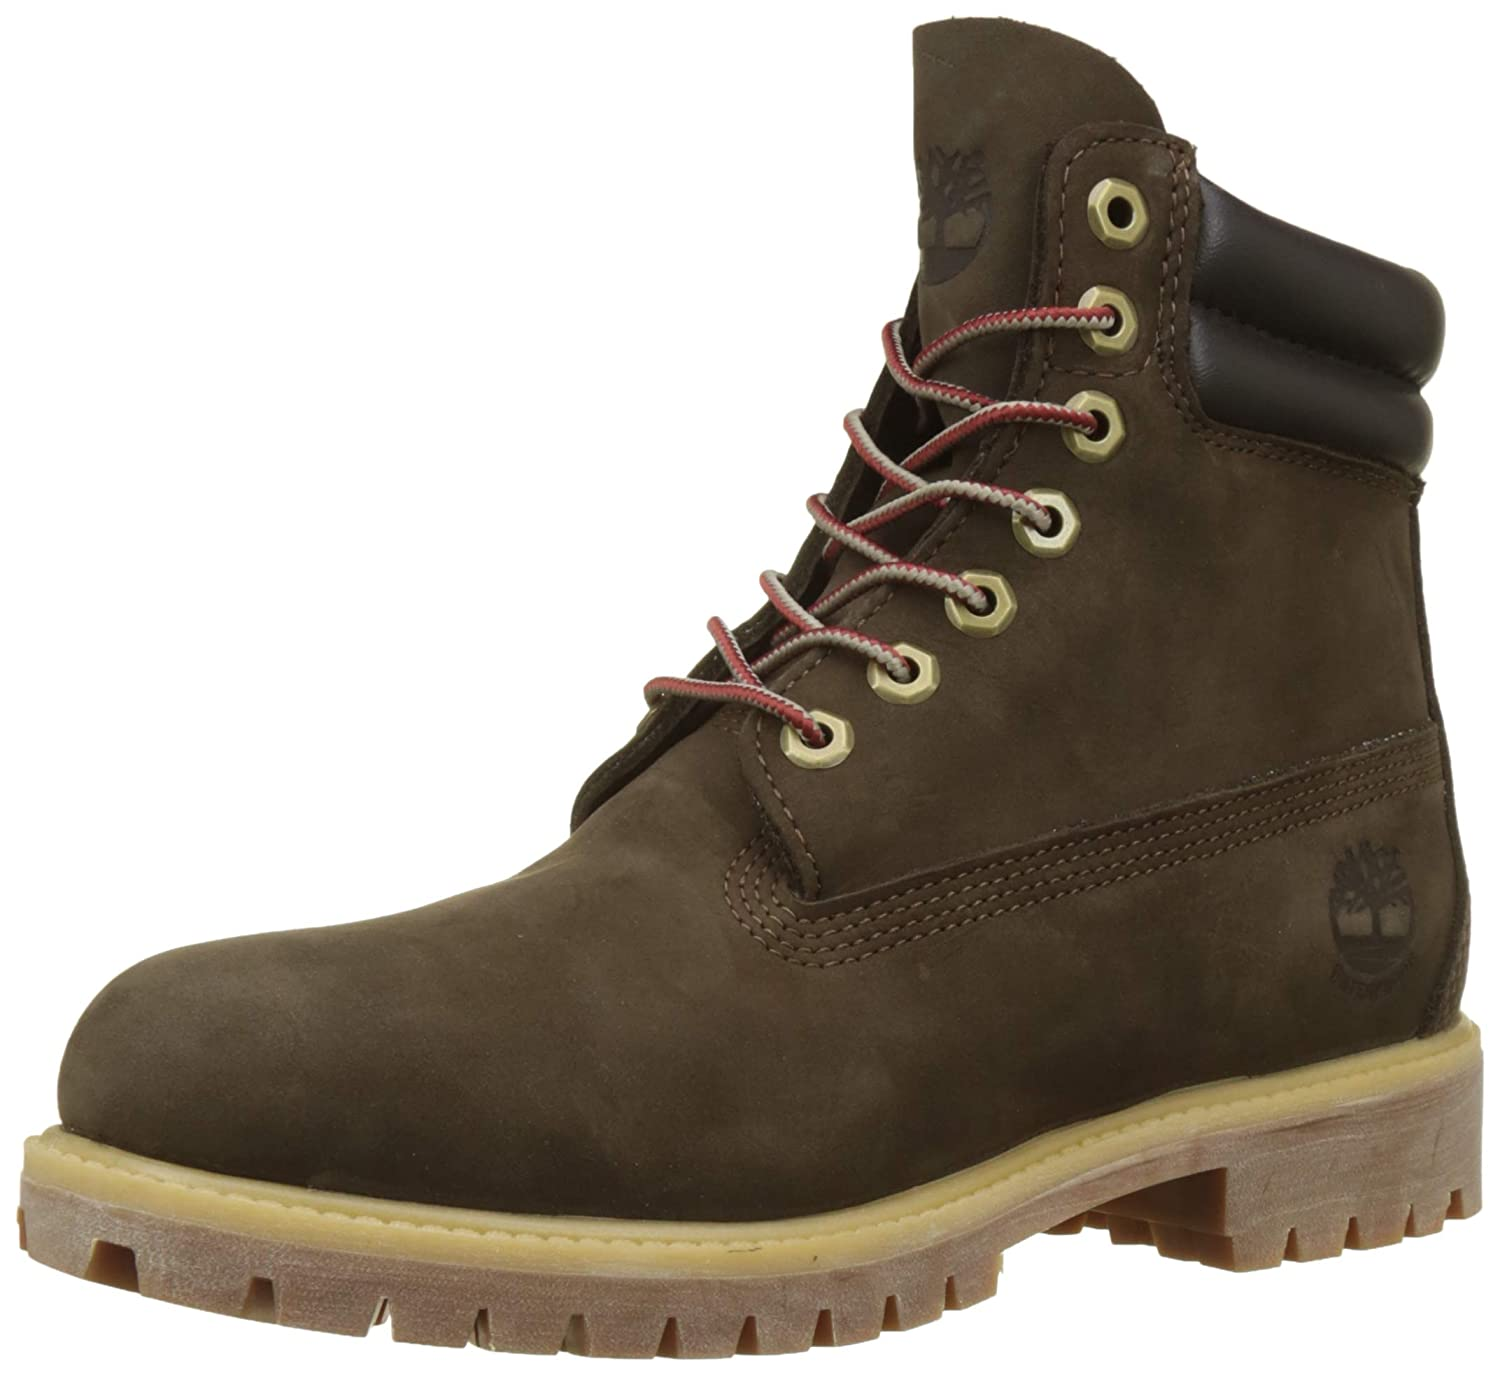 TALLA 49 EU. Timberland 6 In Double Collar Waterproof, Botas para Hombre